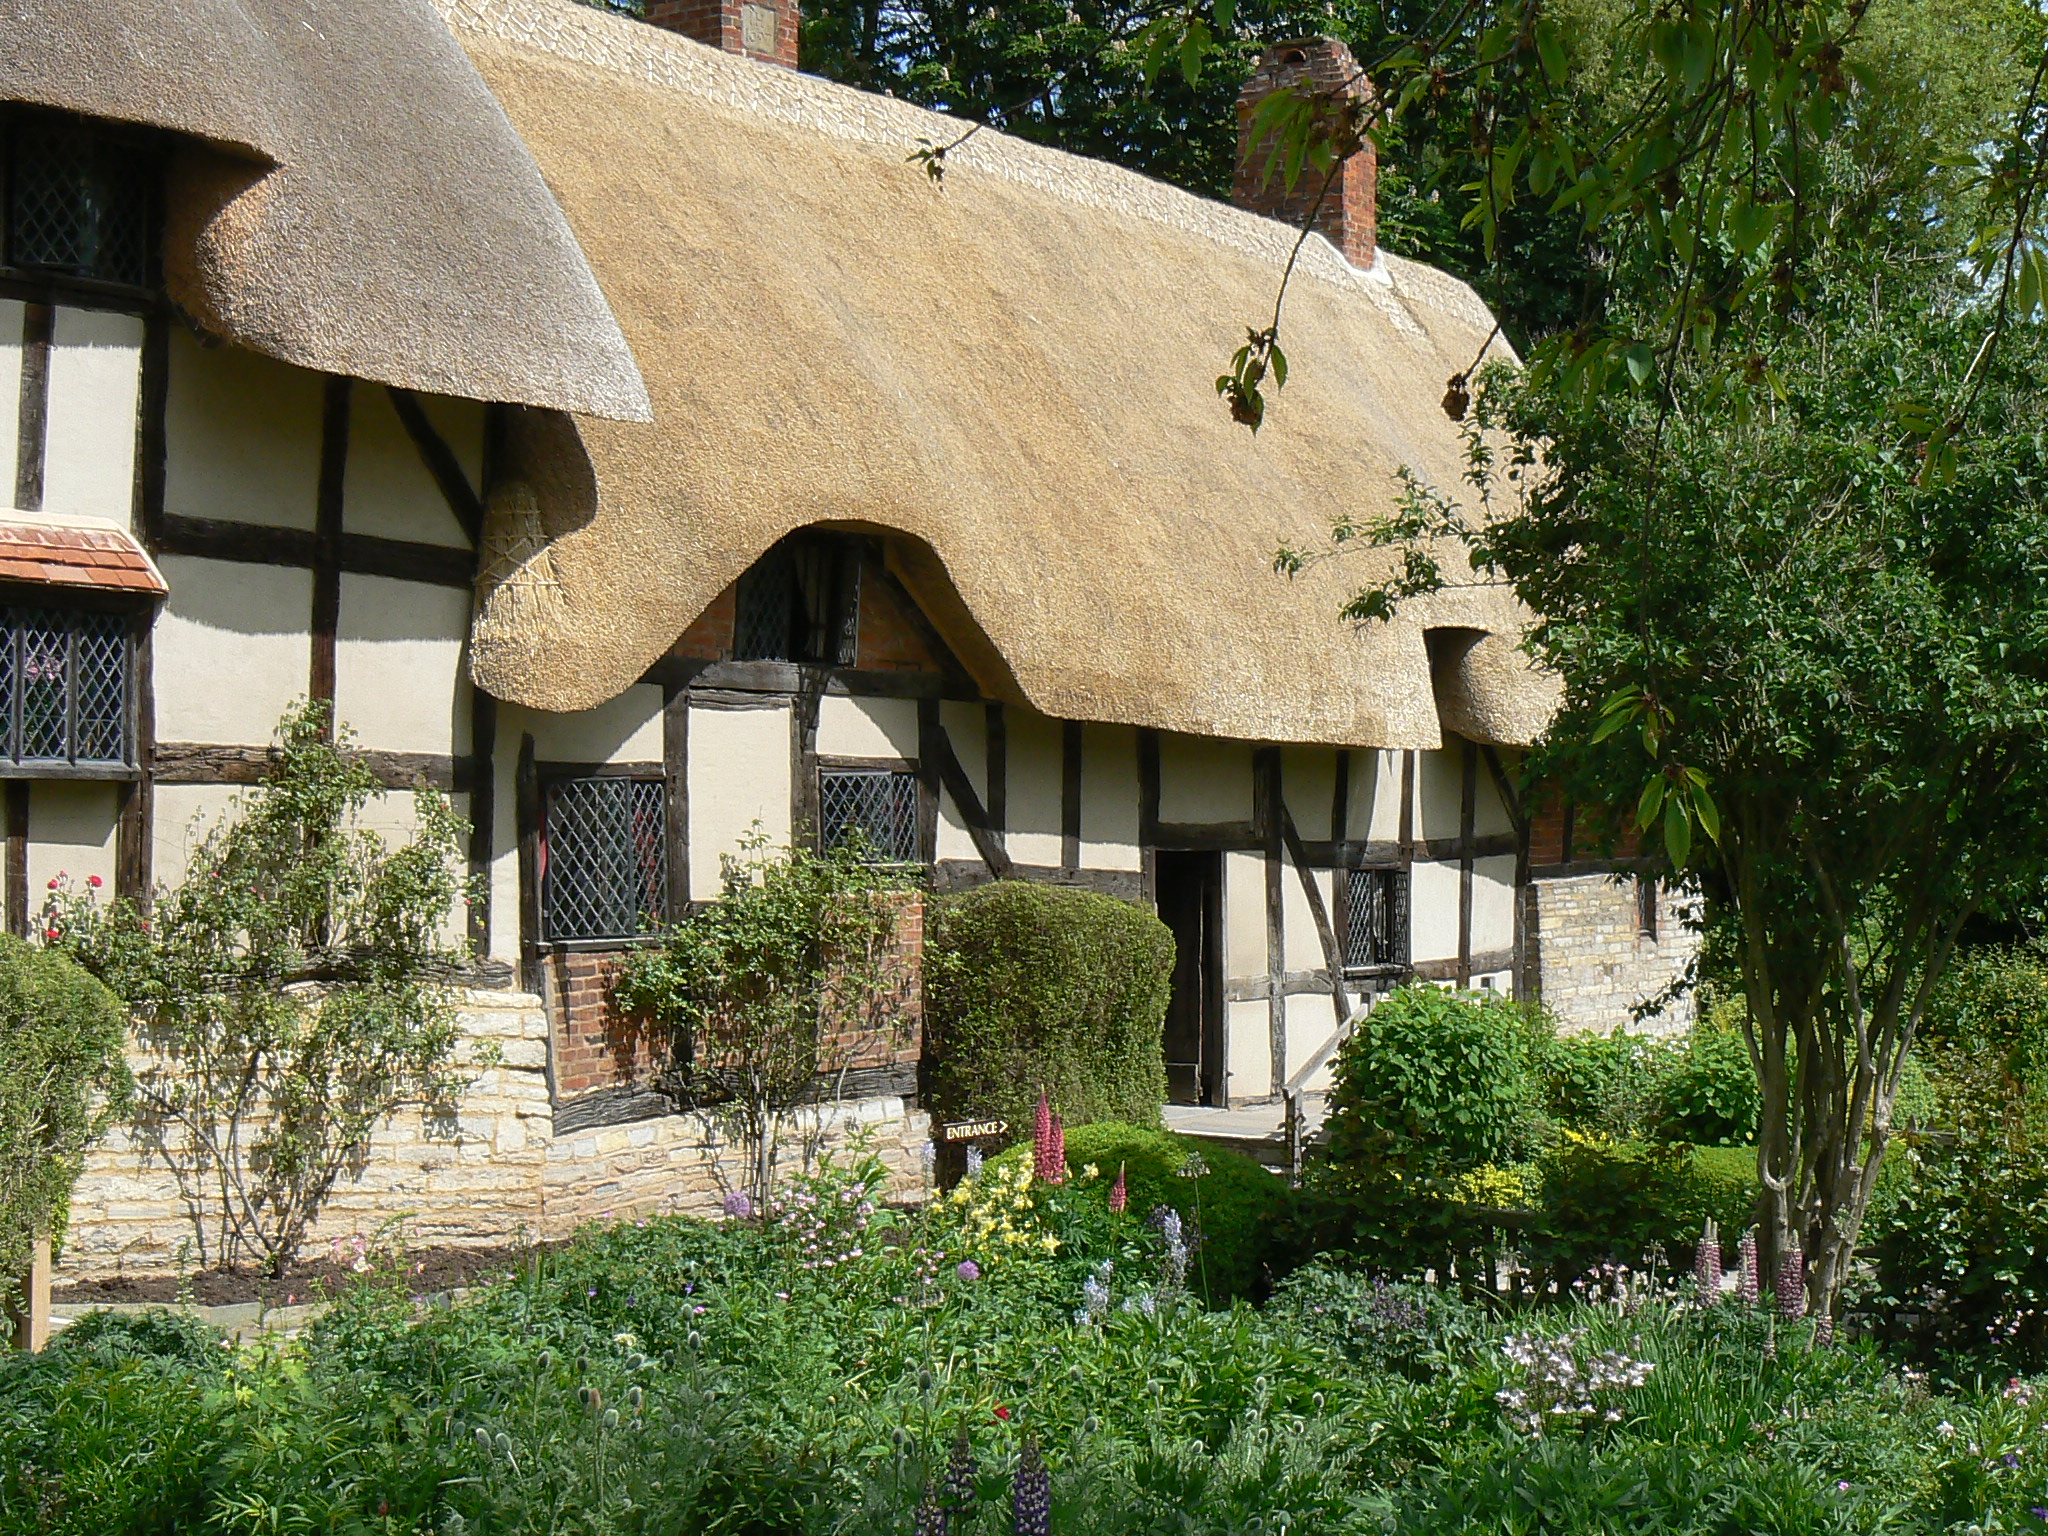 Libby Frankel - Anne Hathaway's House Stratford-upon-Avon